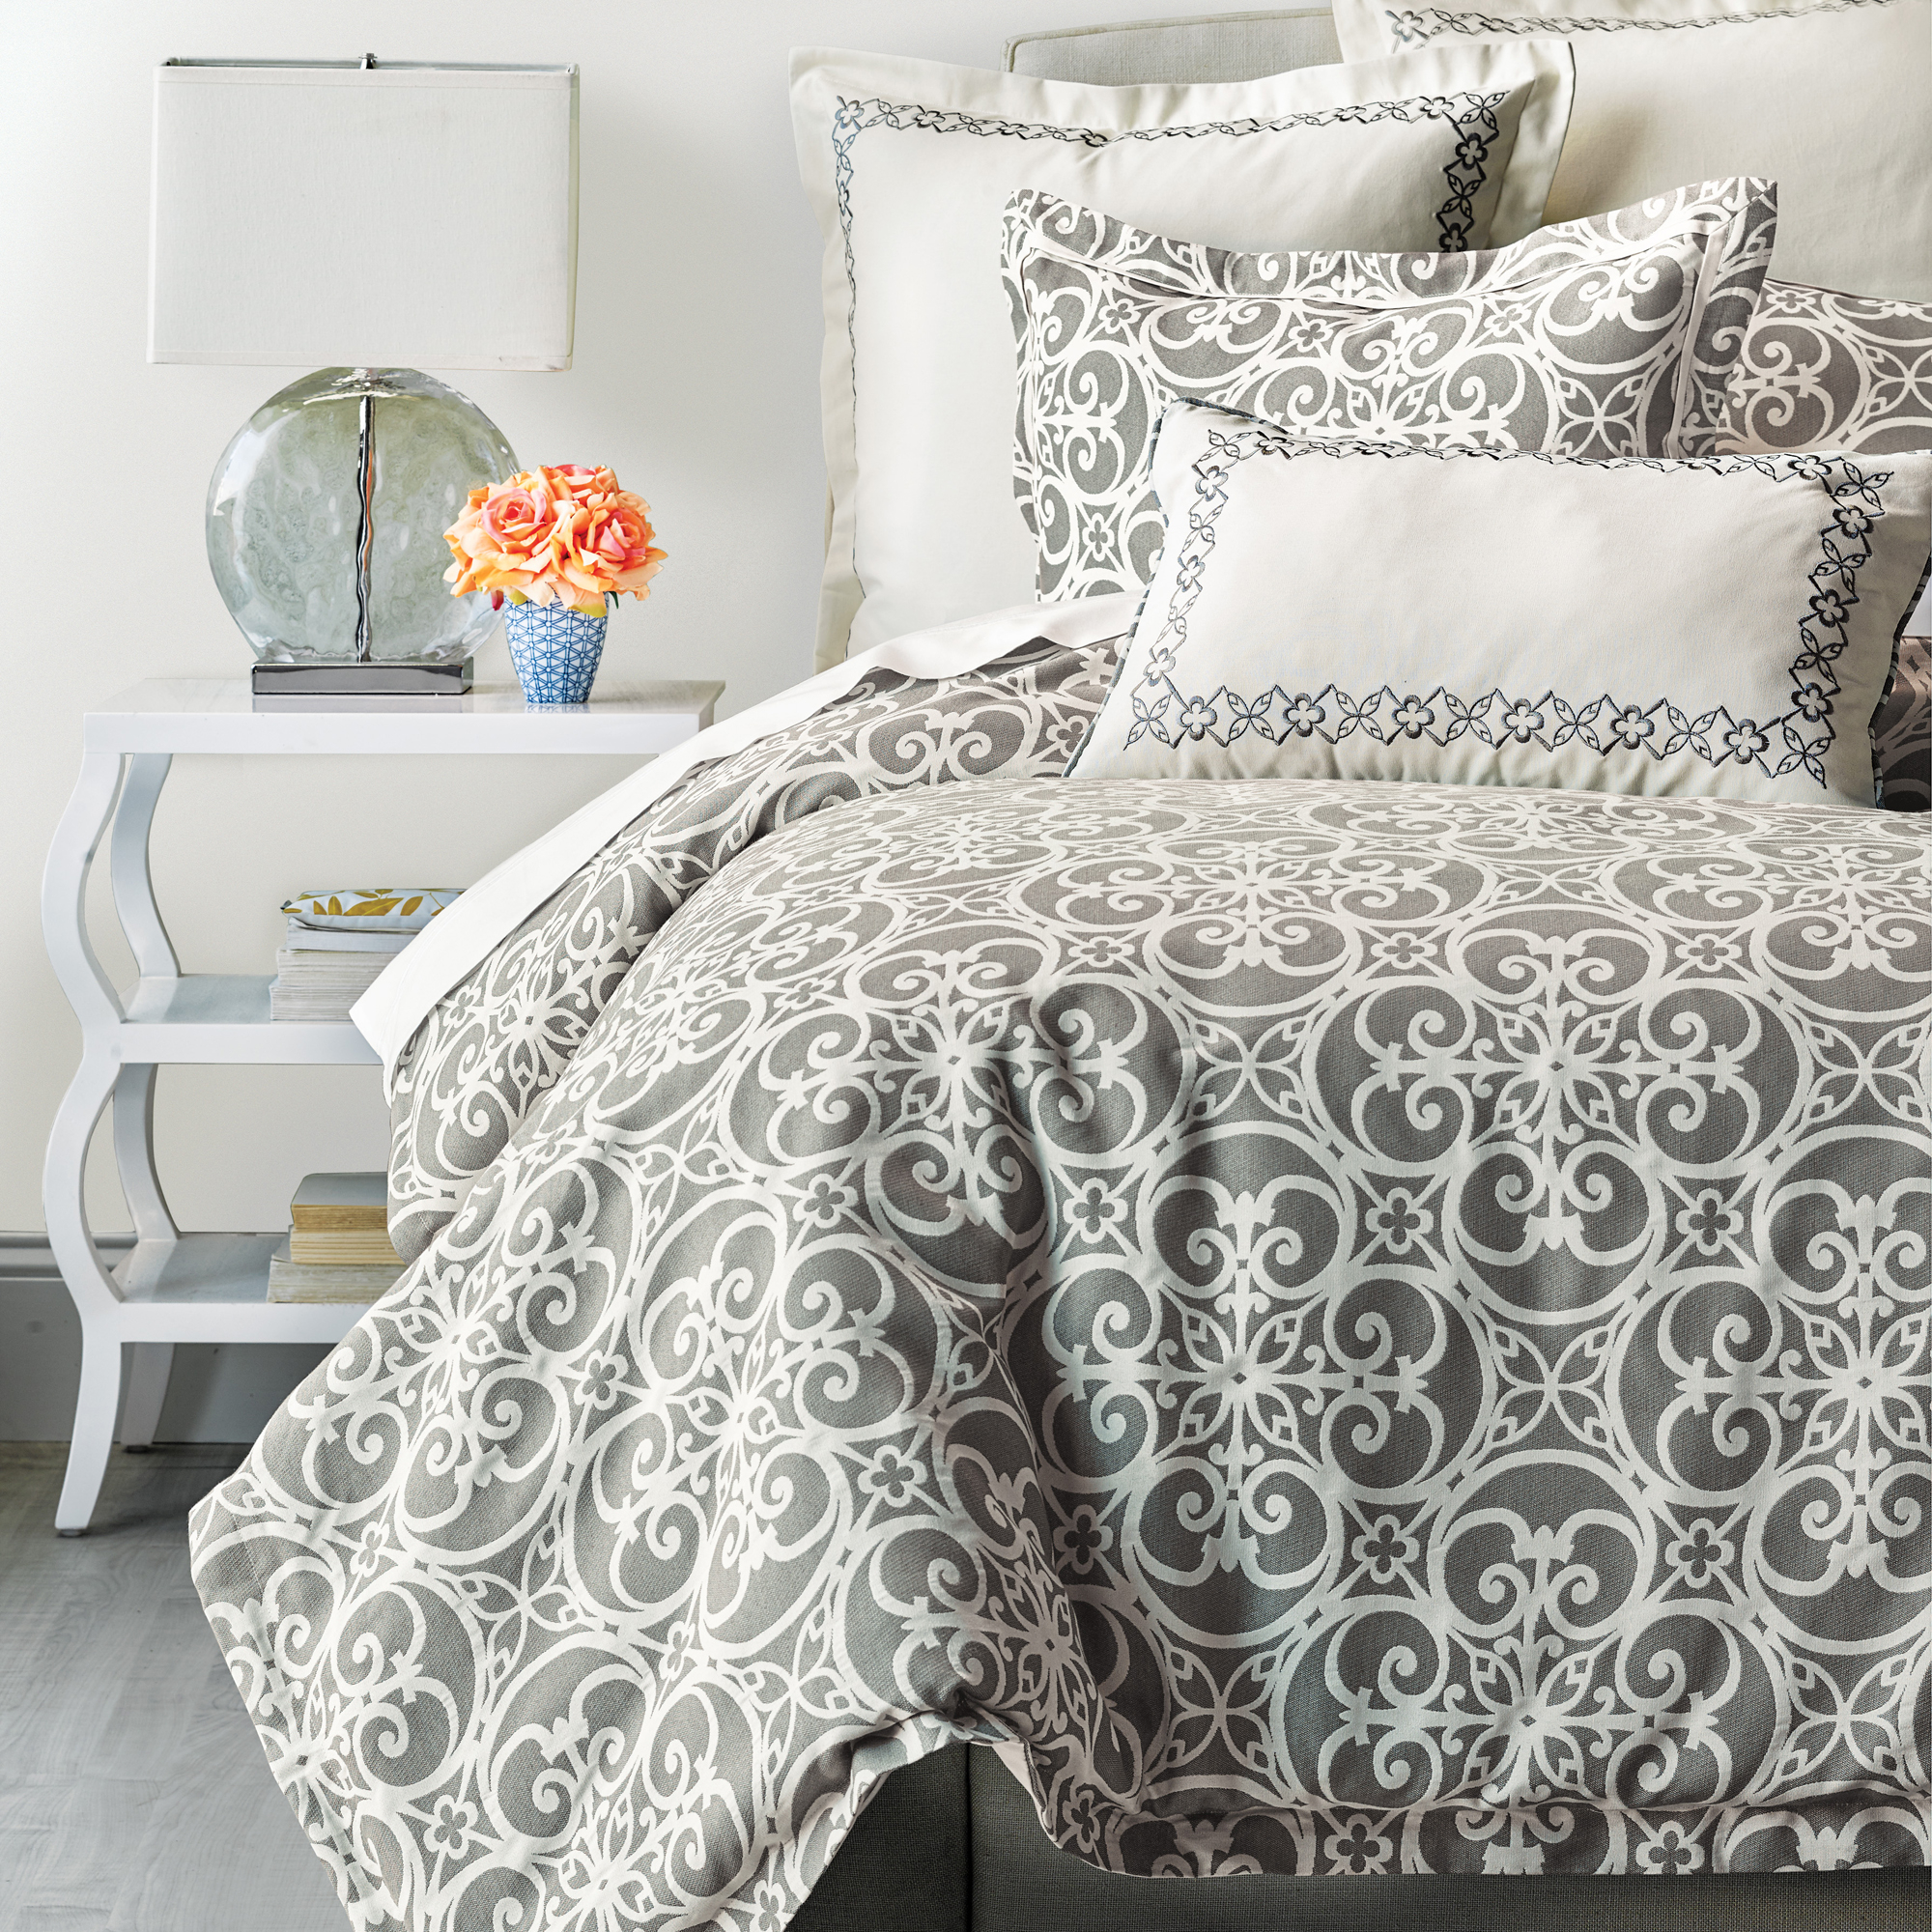 Garden Gate Jacquard Bedding Sets